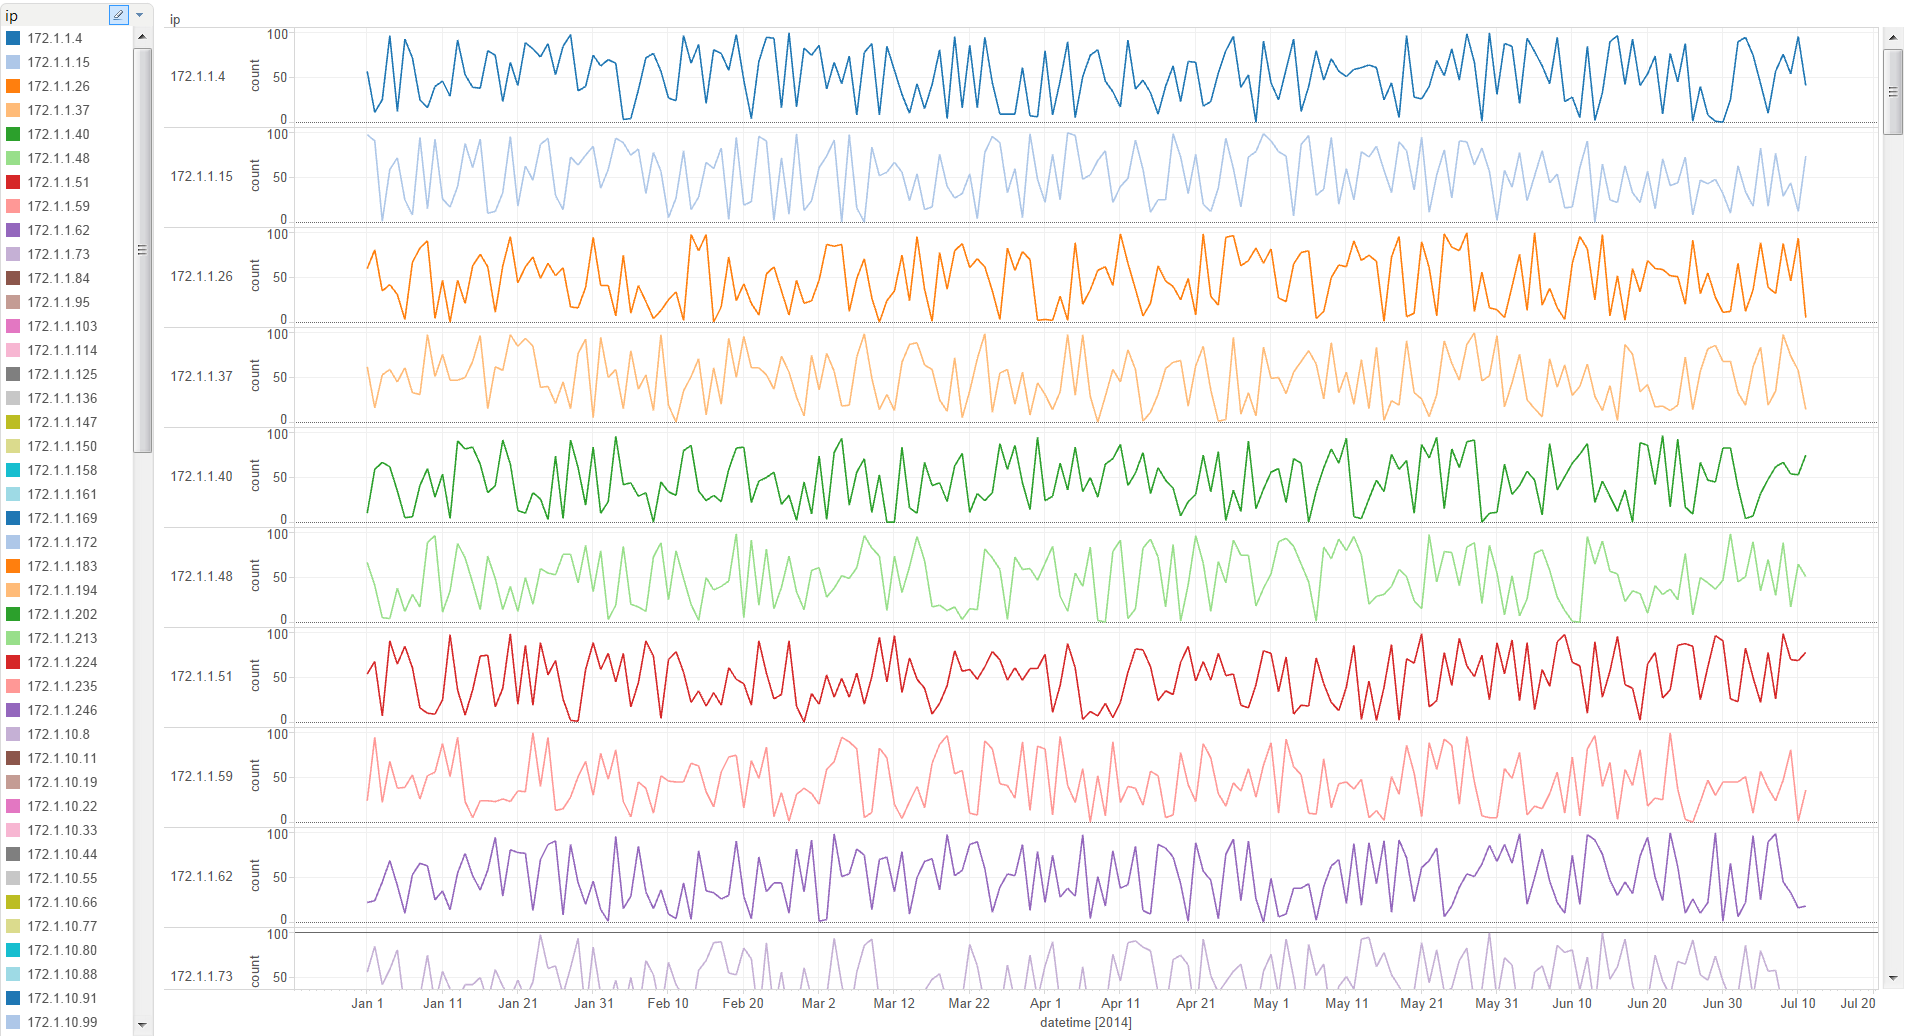 Time Series of IP Address Counts